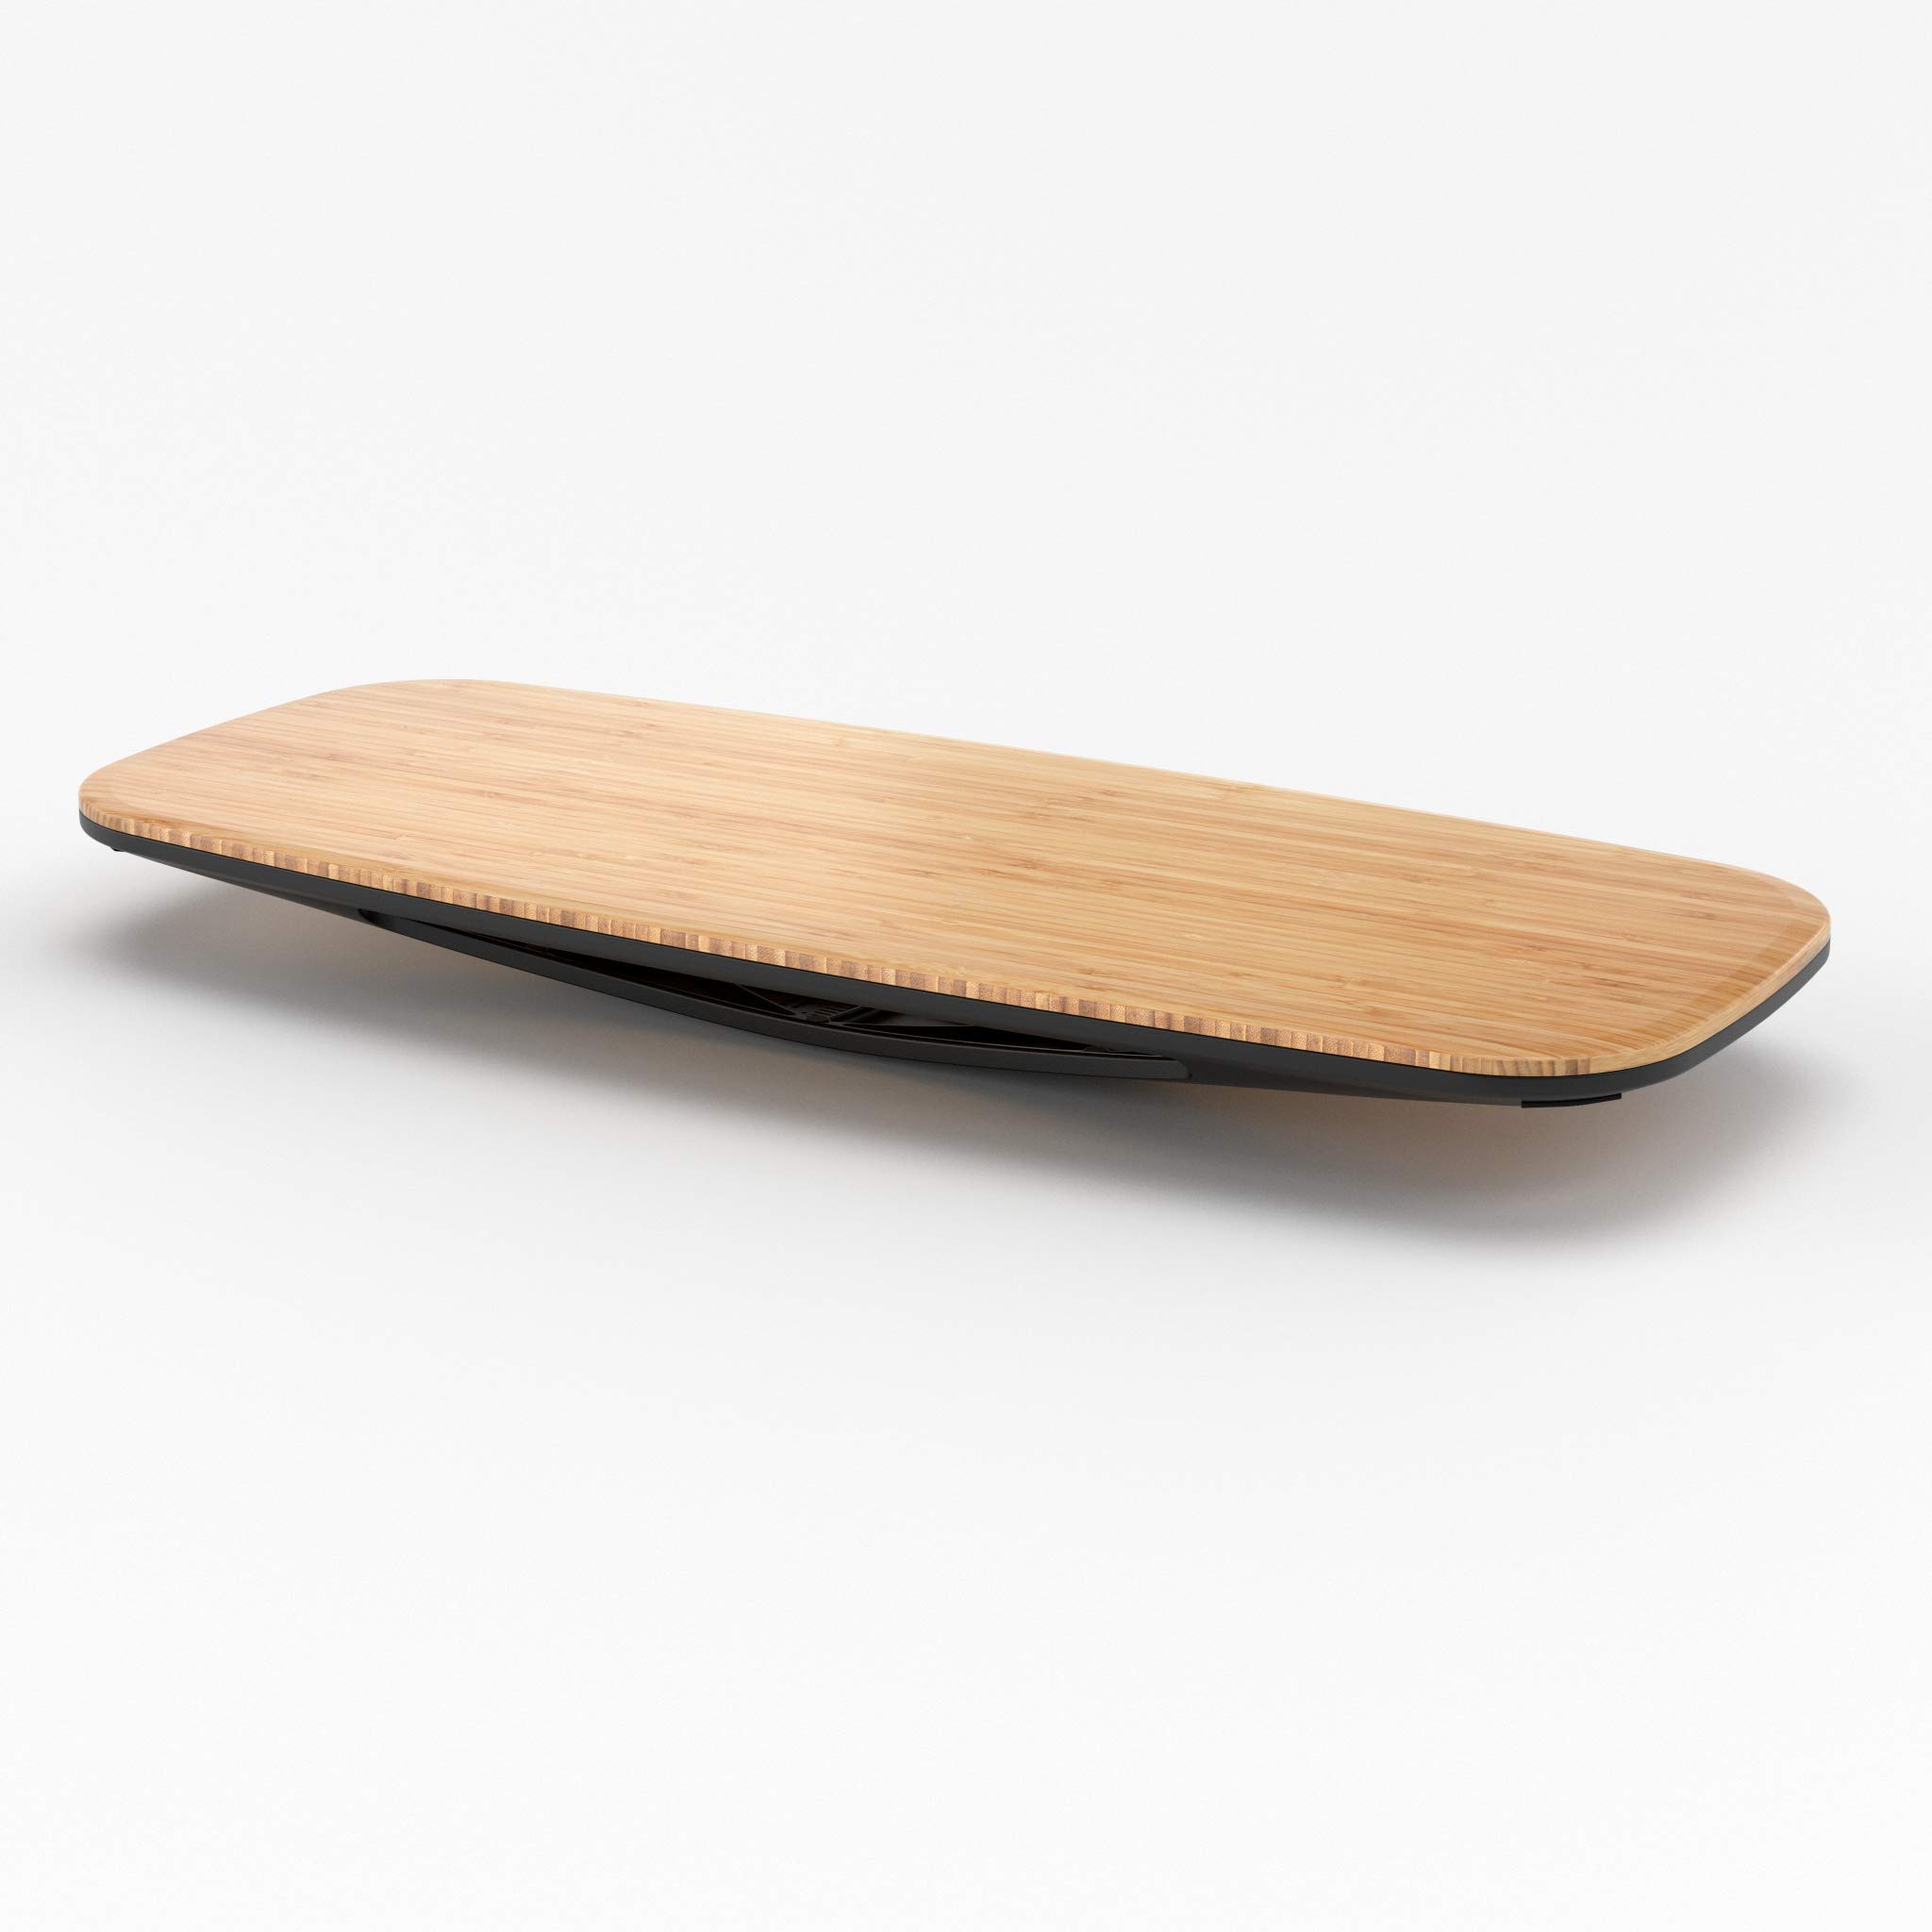 Fully Floatdeck Balance Board - Exercise at Your Desk and Office - Powder Coated Aluminum Base and Bamboo Top